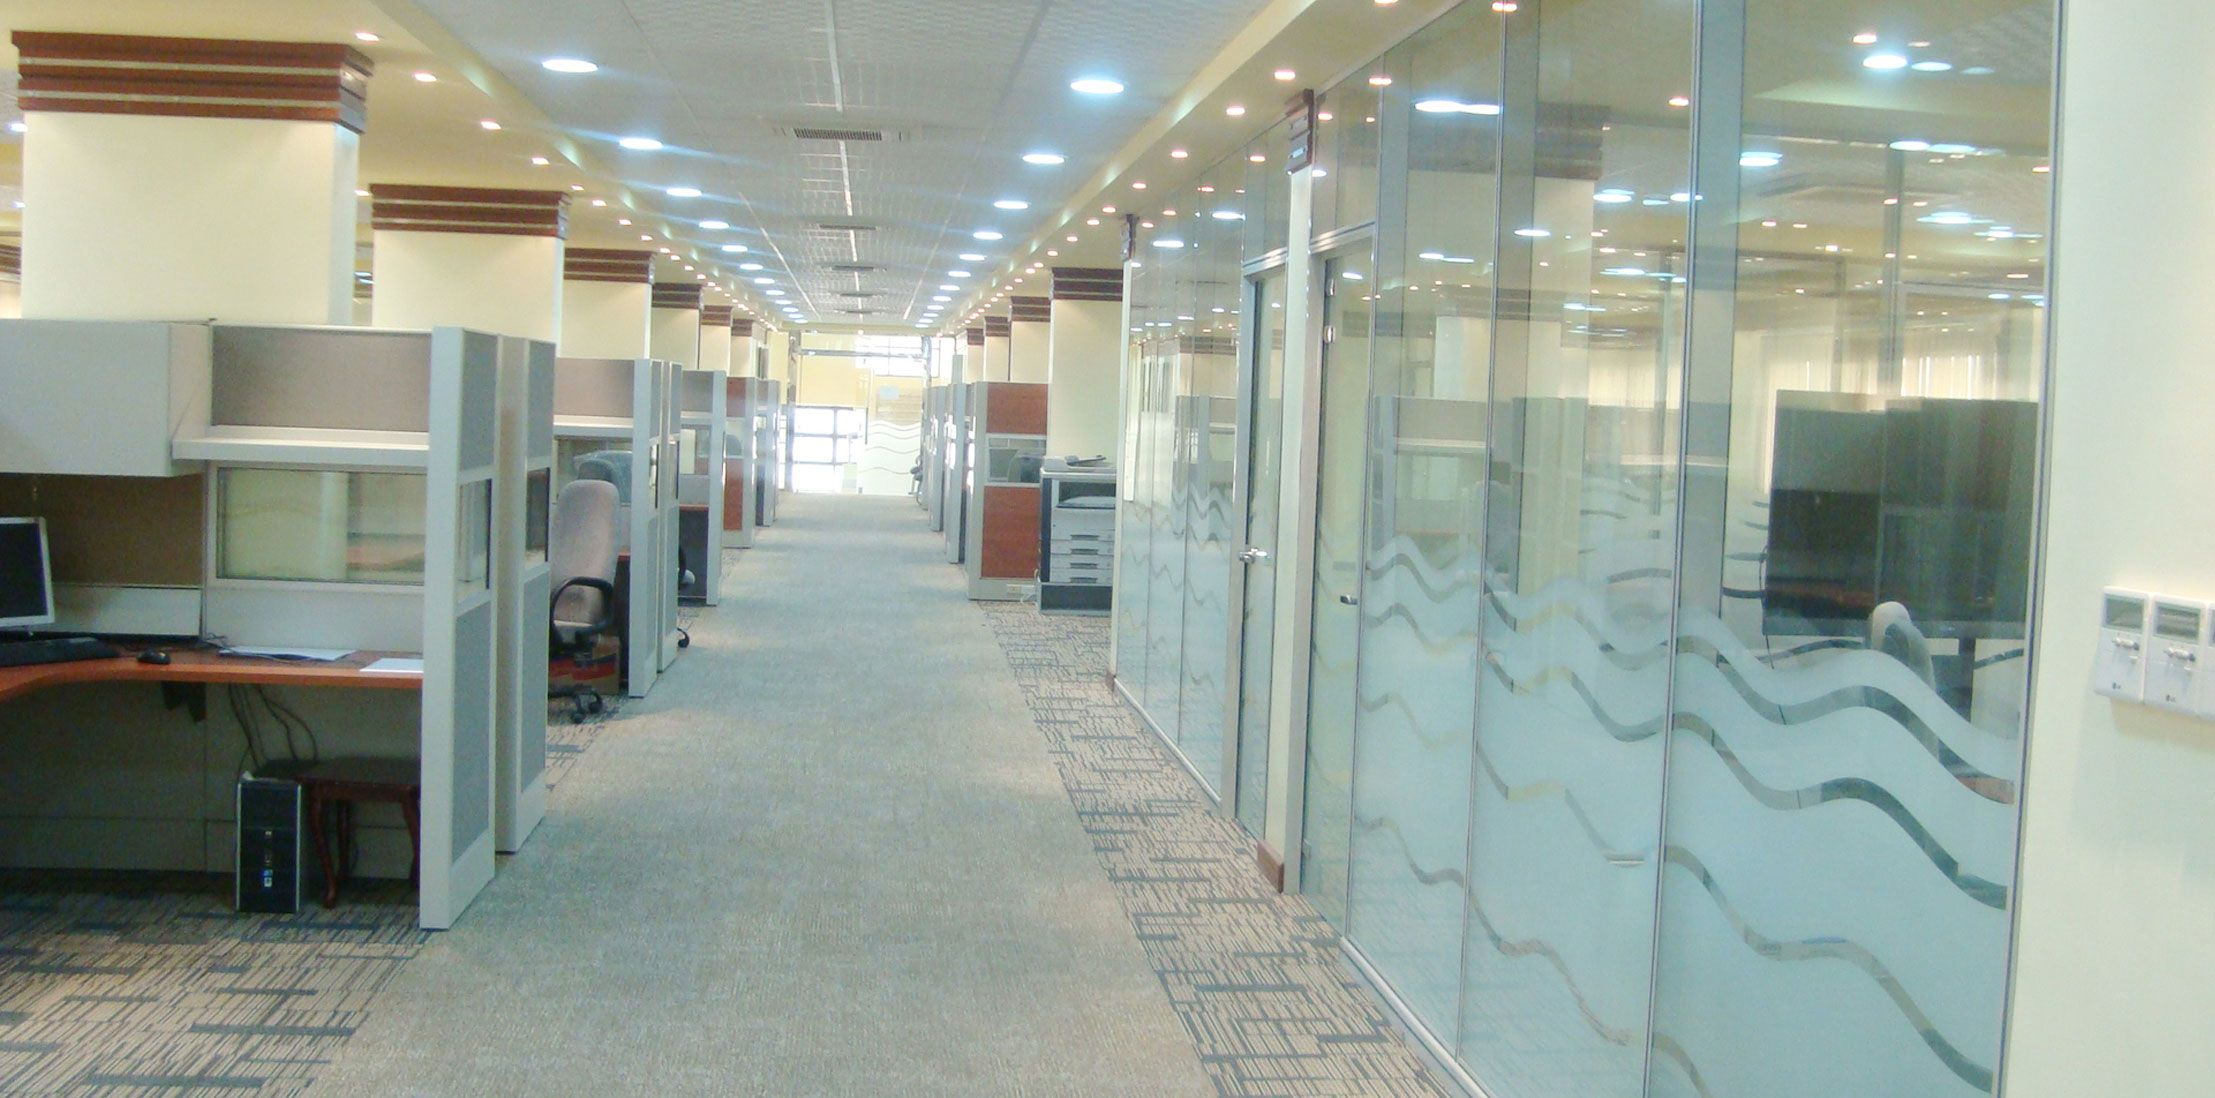 Glass Door Repair Services Dubai Call New 0555544293 With Over 20